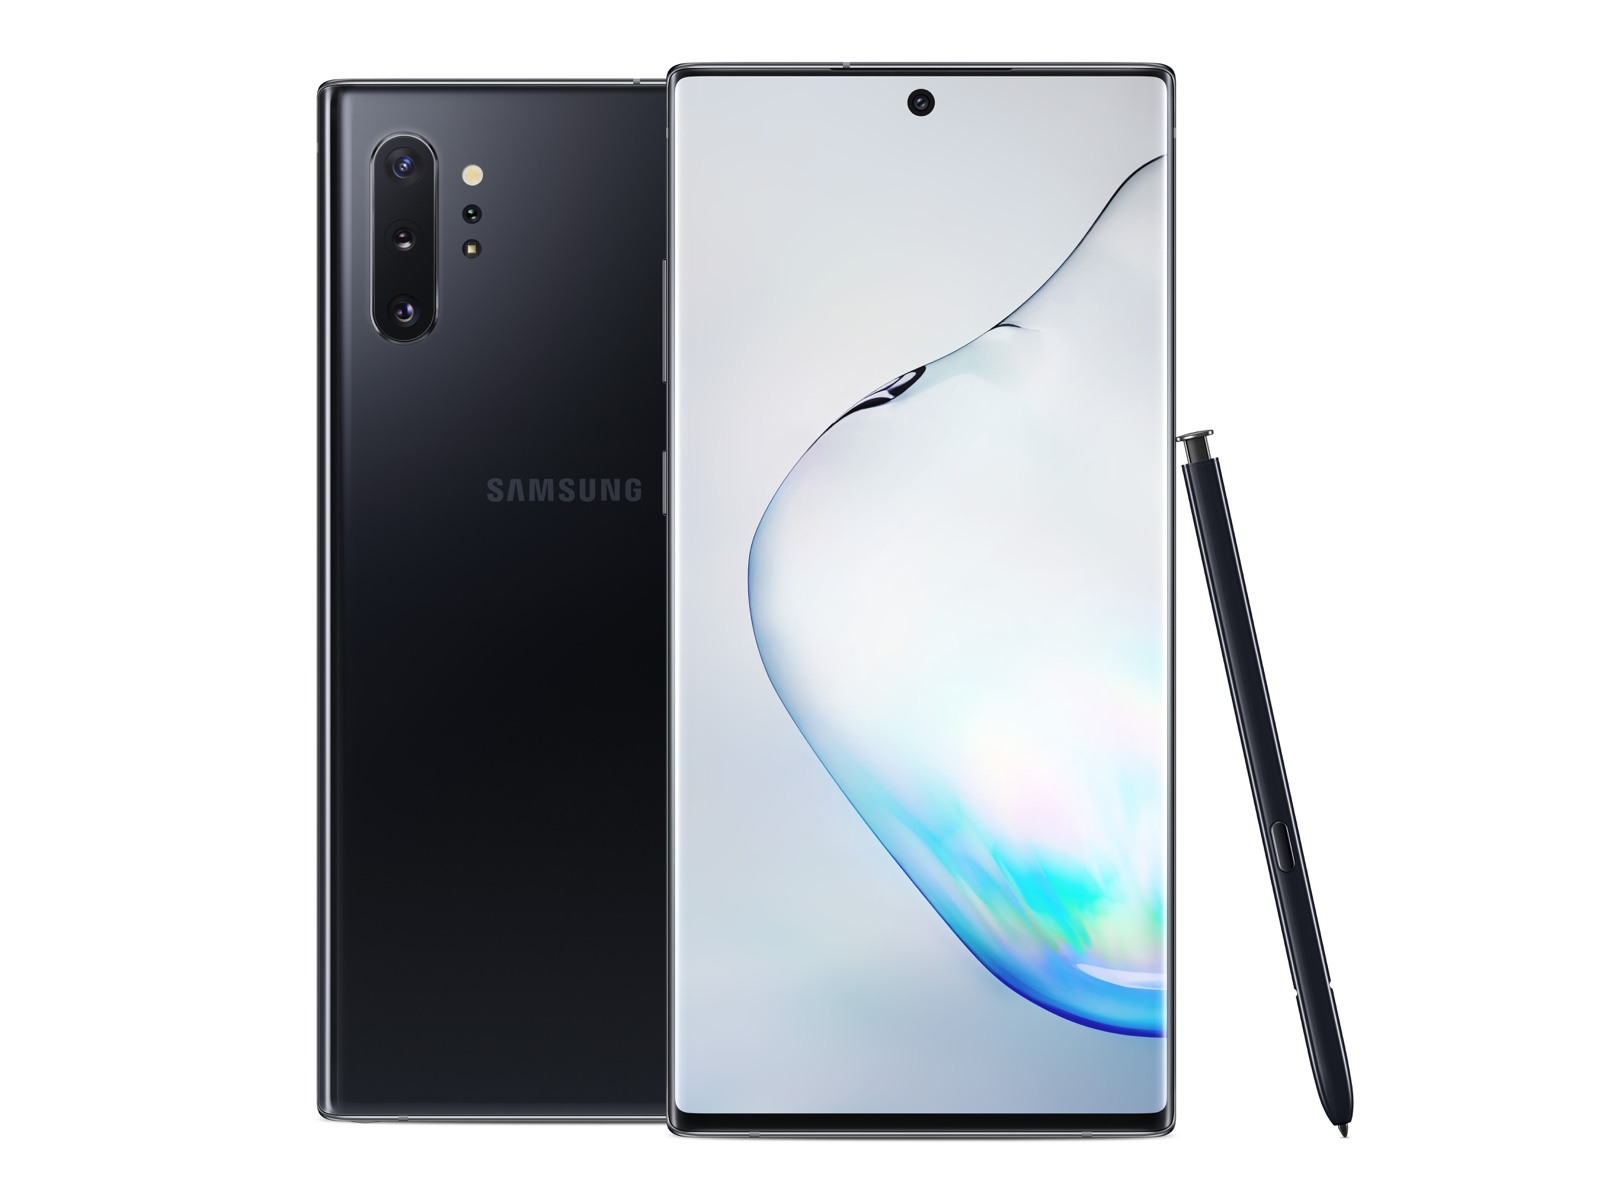 Galaxy Note10+ 256GB (Xfinity Mobile)